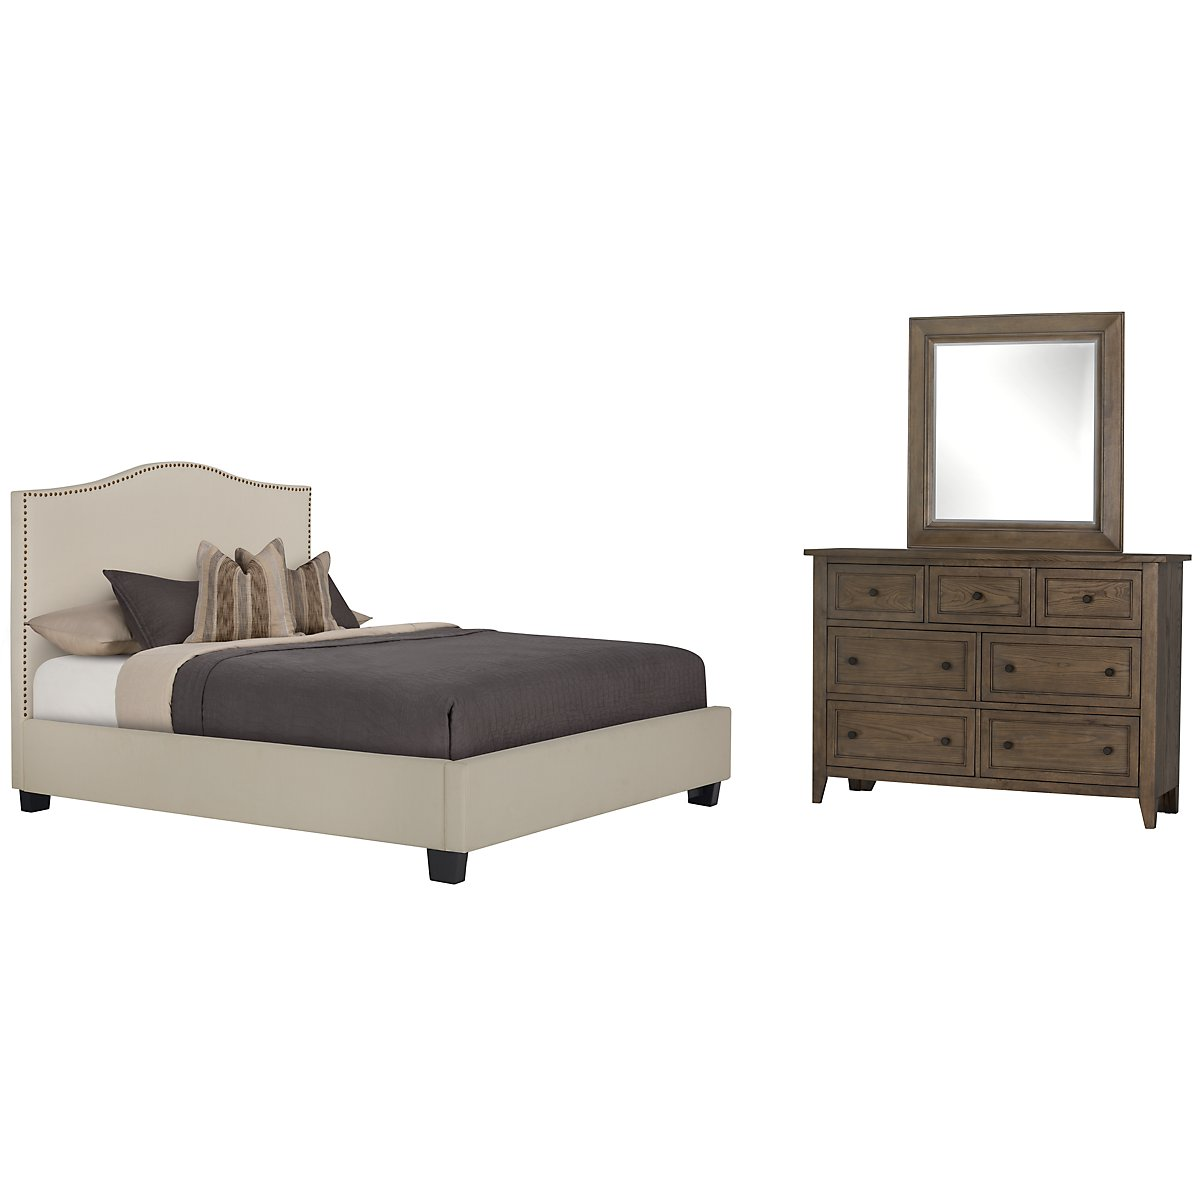 Dawson Beige Upholstered Platform Bedroom